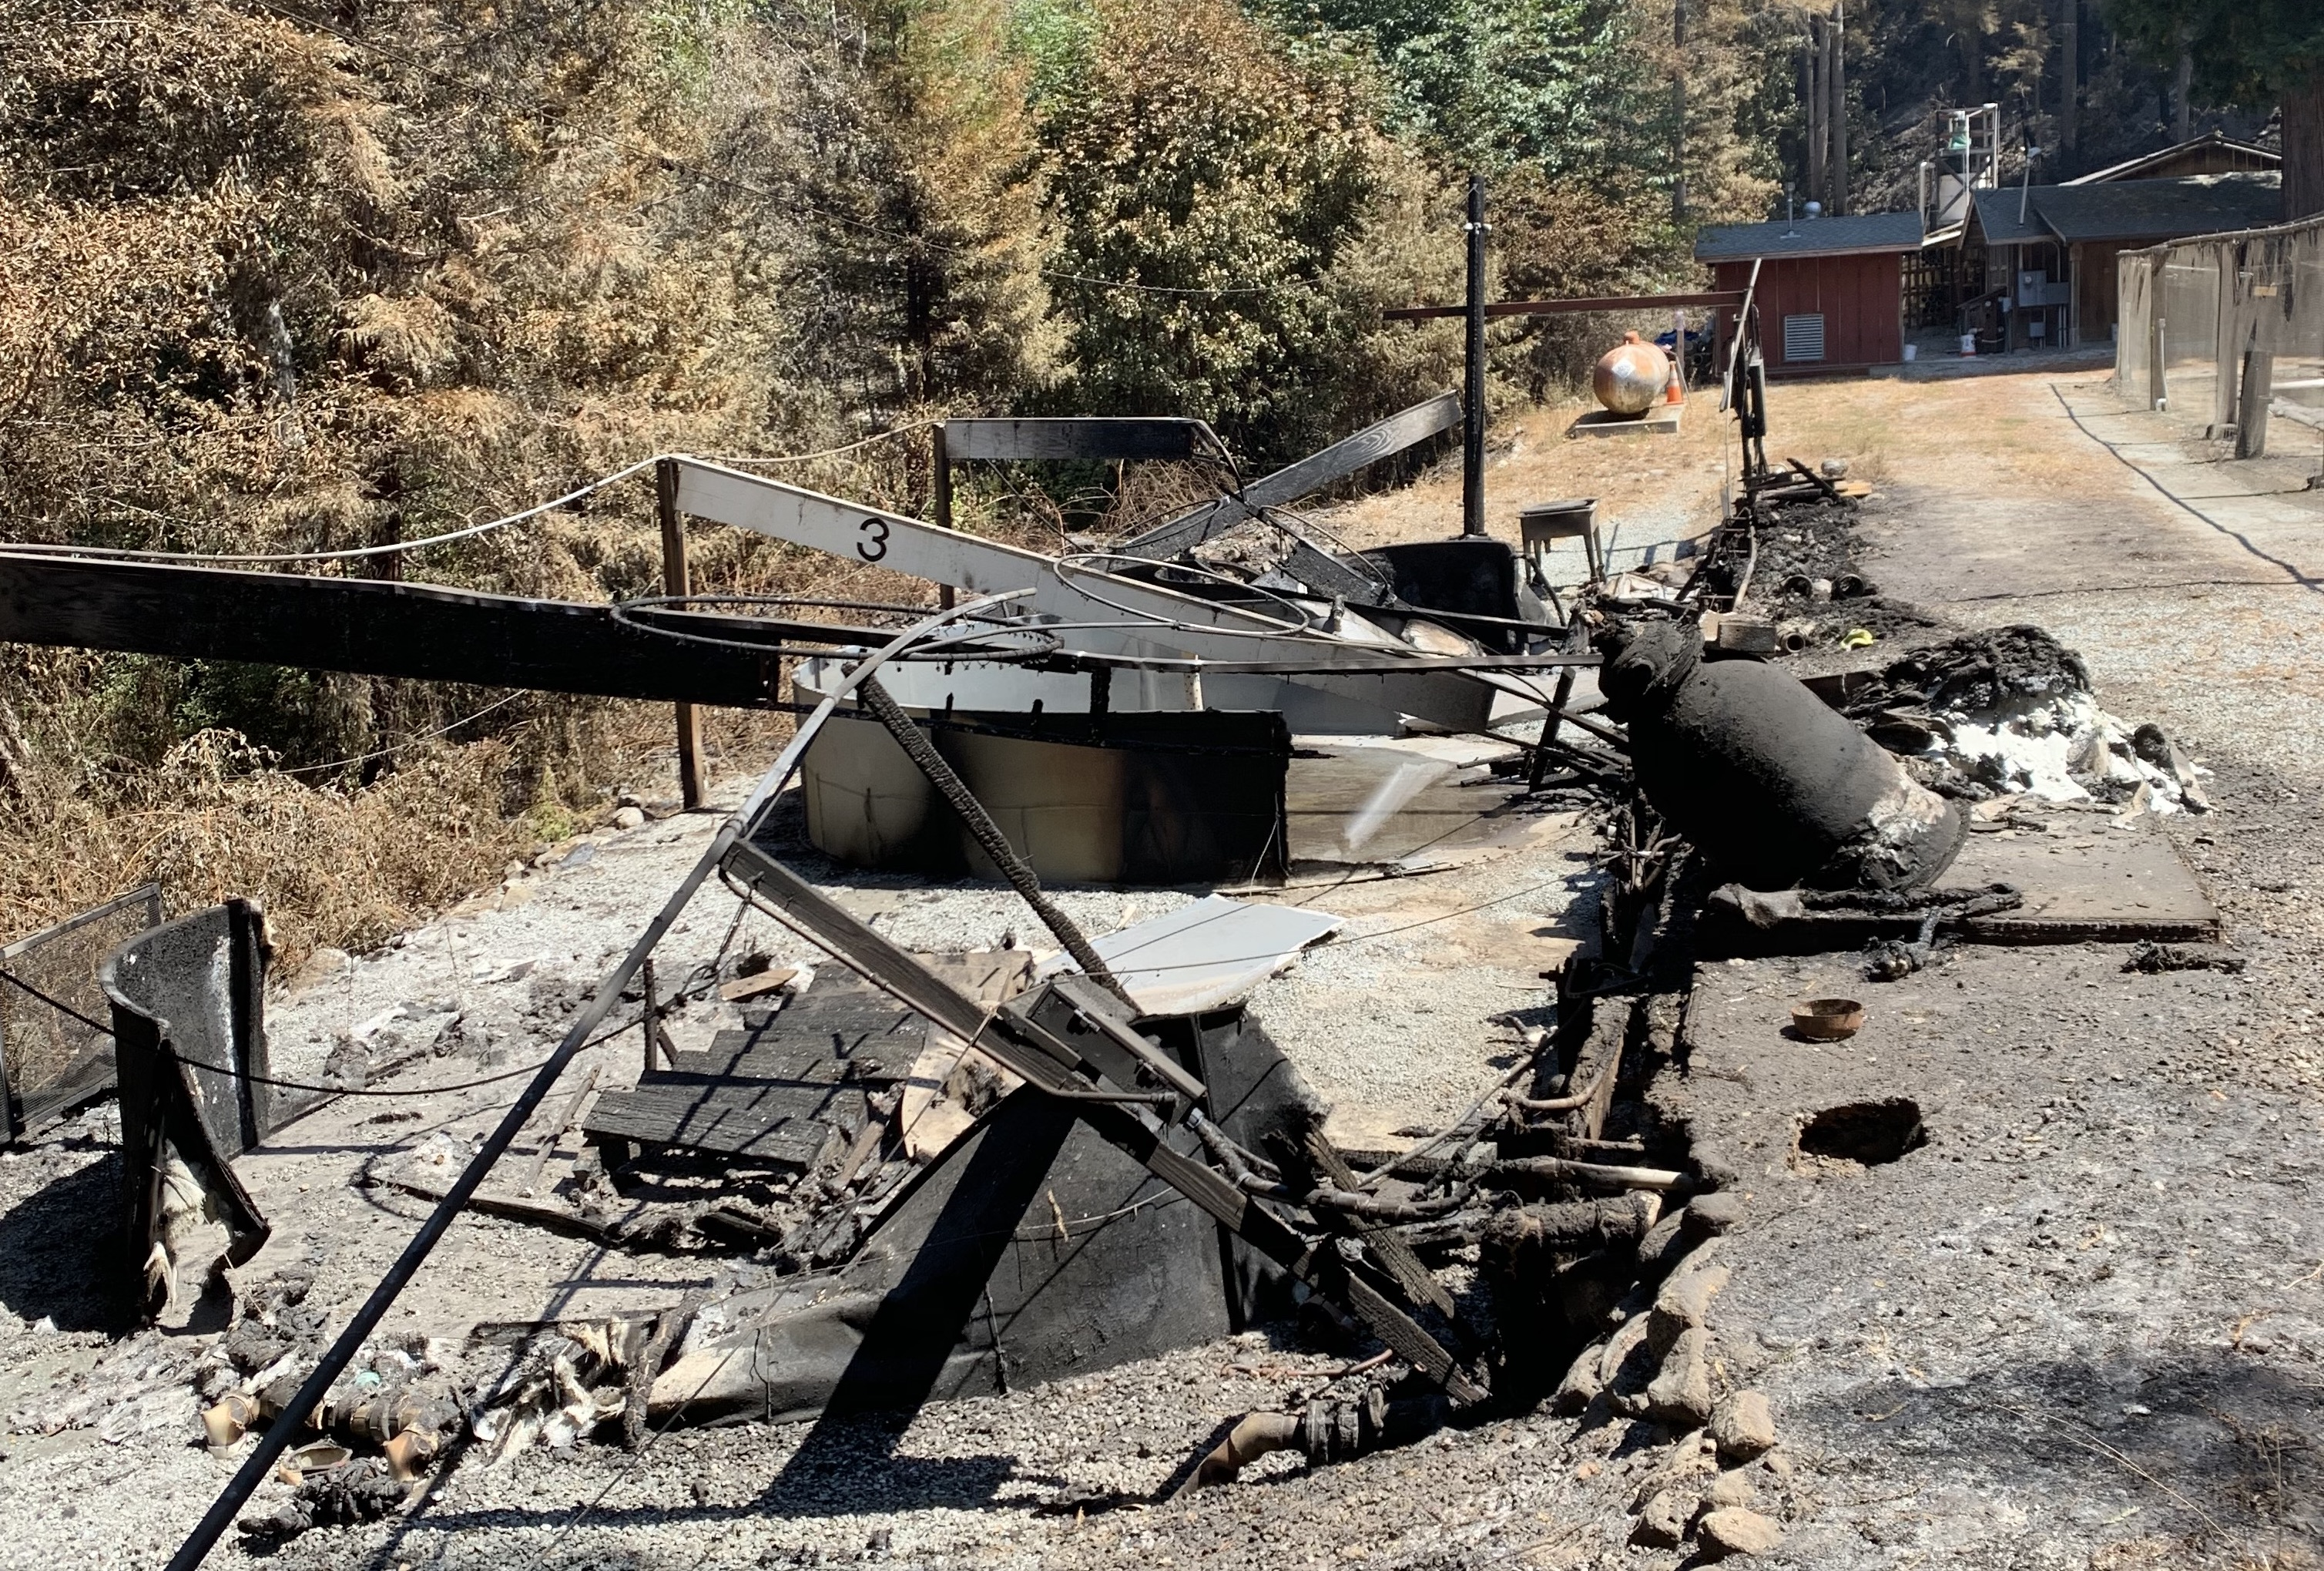 Damage to Monterey Bay Salmon and Trout project hatchery after fire